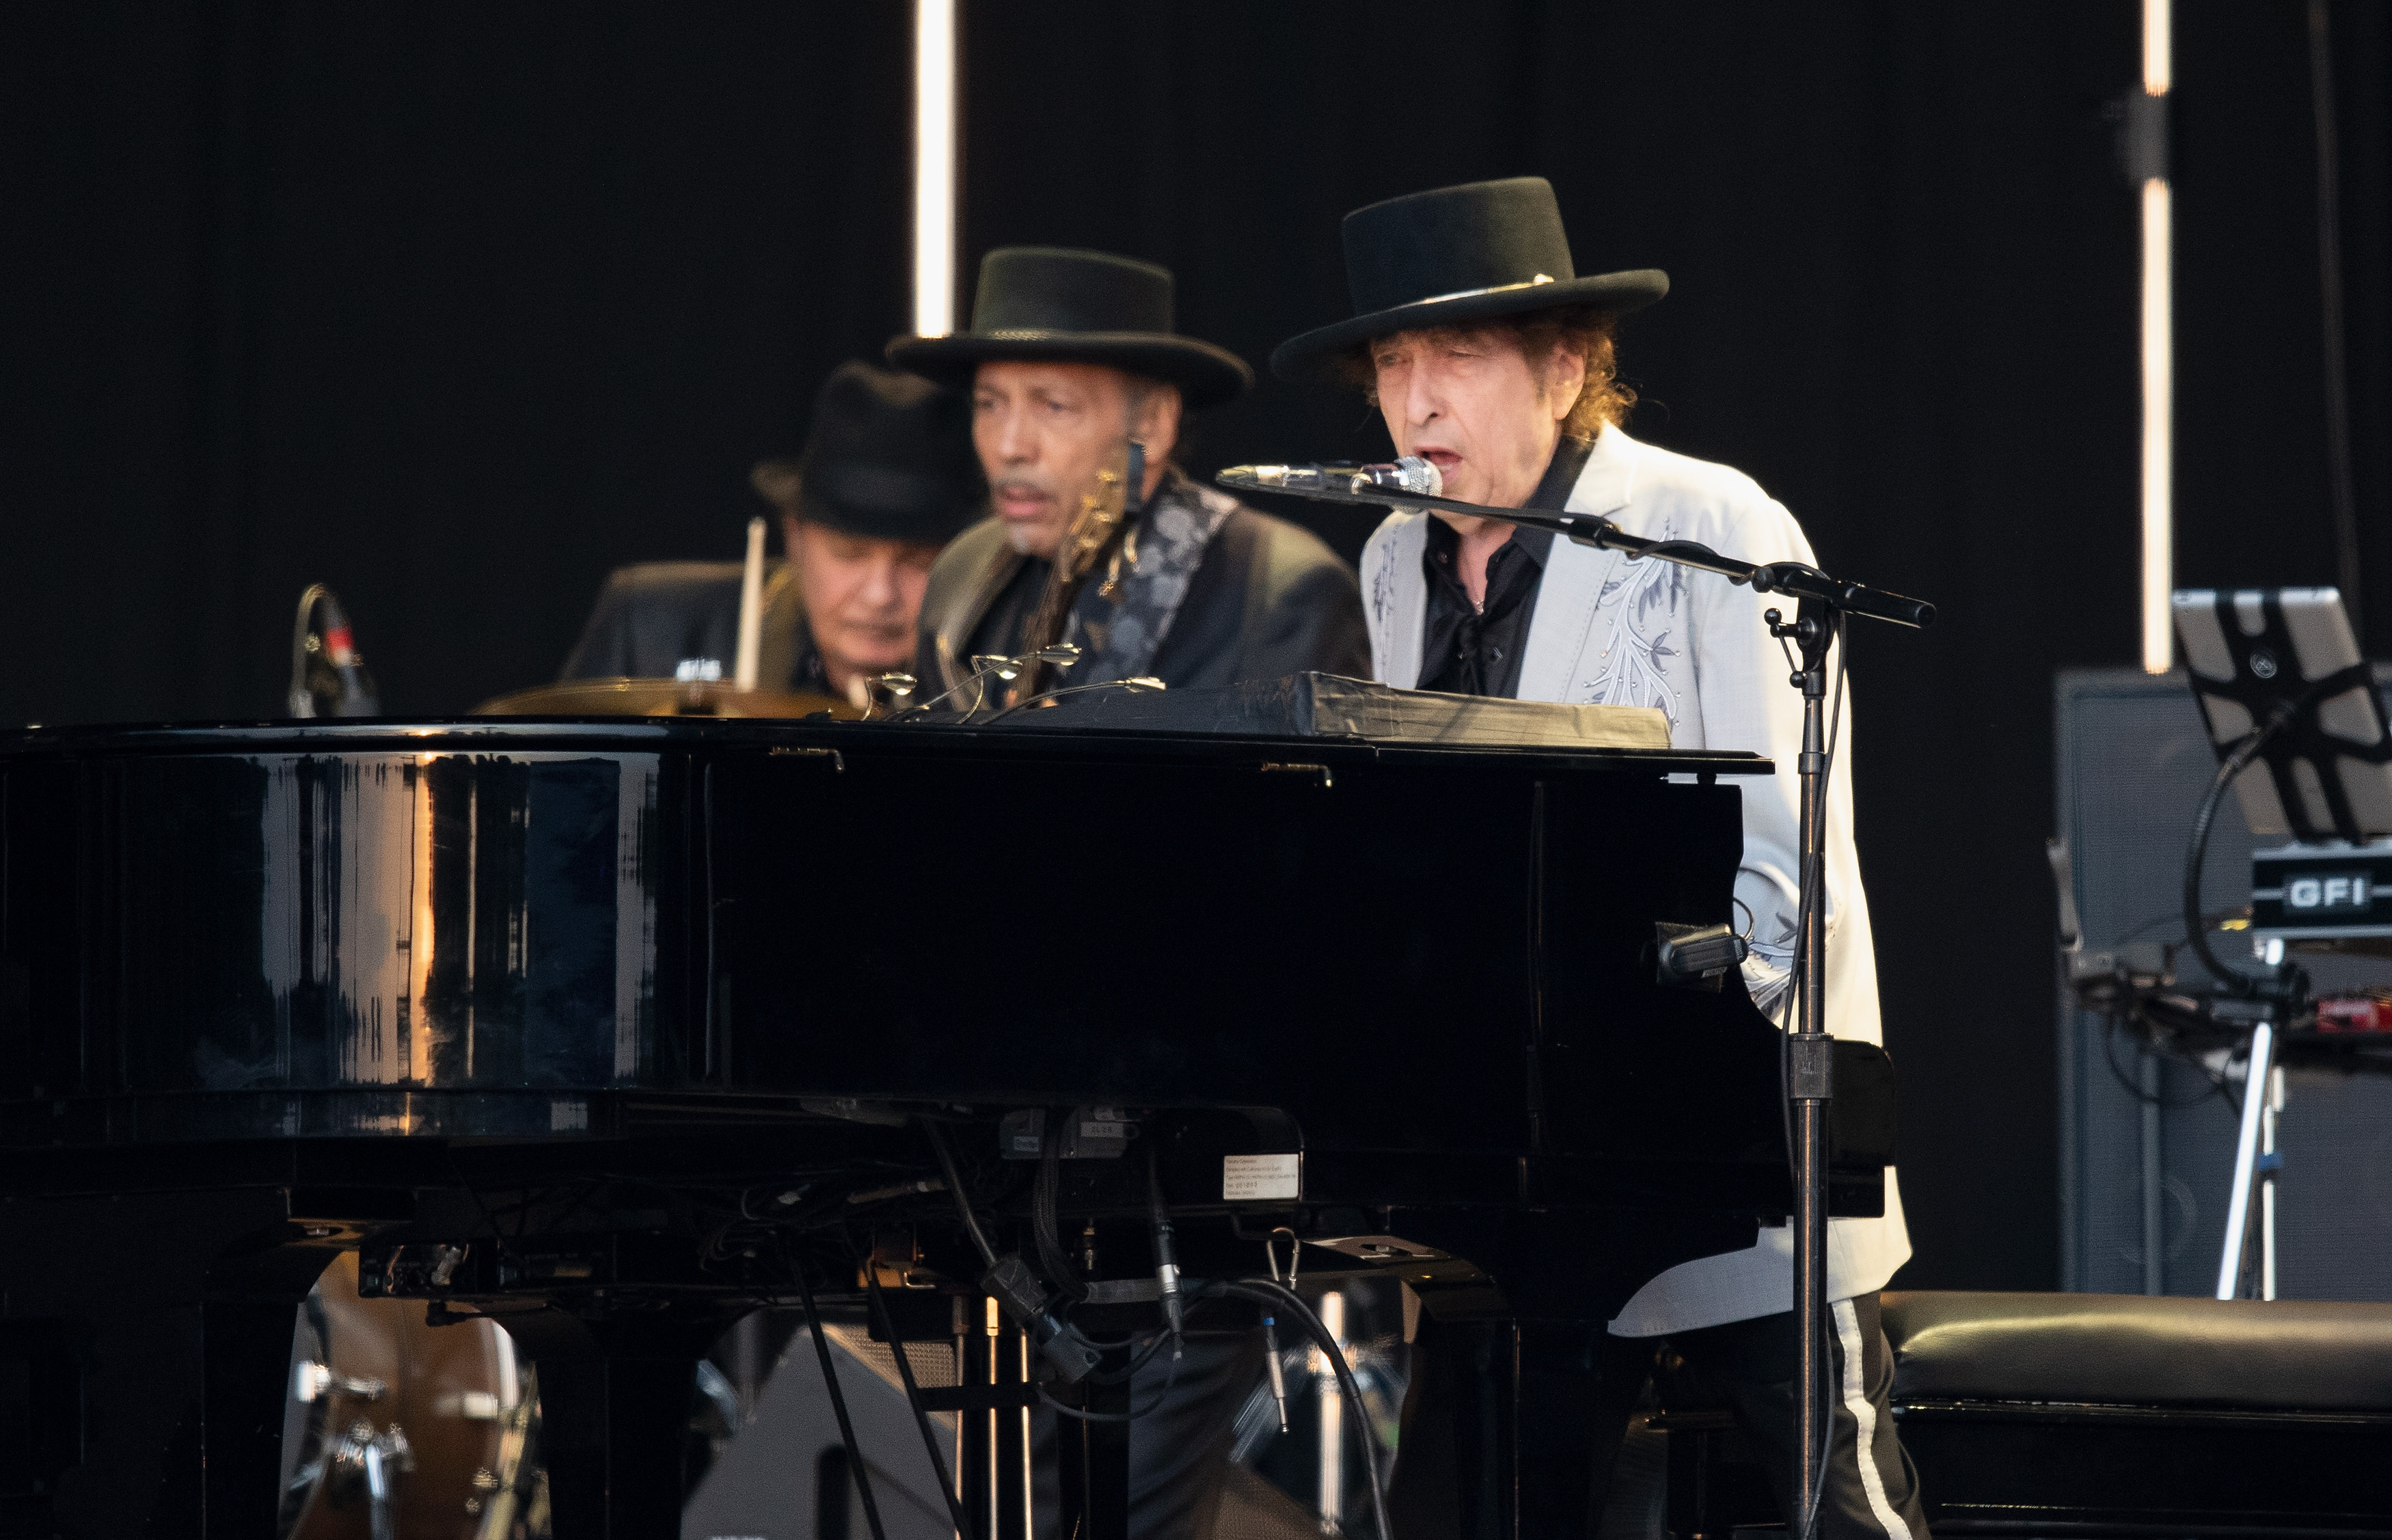 bob-dylan-performs-lenny-bruce-for-the-first-time-in-over-a-decade-listen